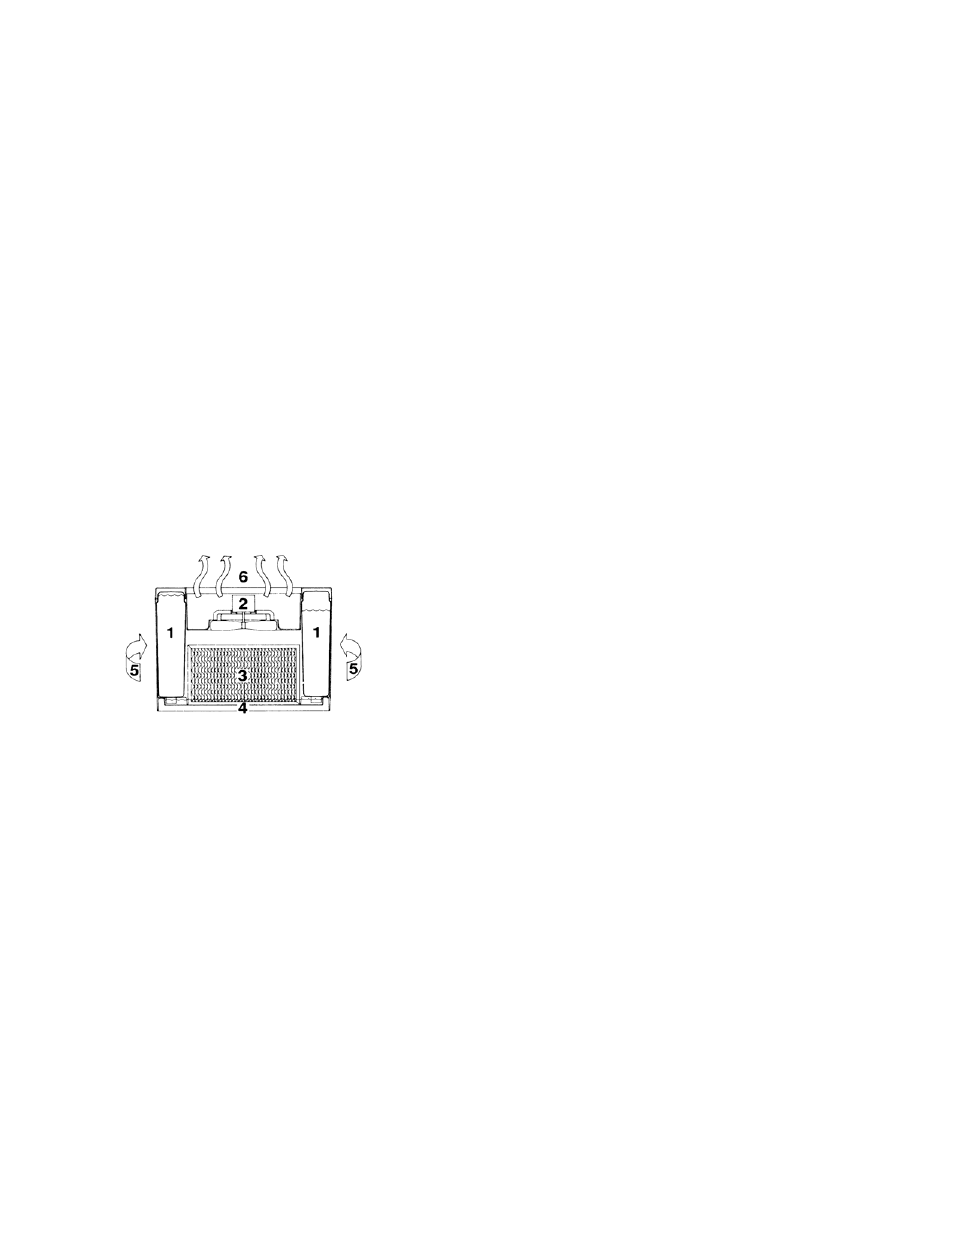 Essick Air 696 400 User Manual   Page 2 / 13   Also for: 4D7 800, 4D7 300,  697 500, 447 302